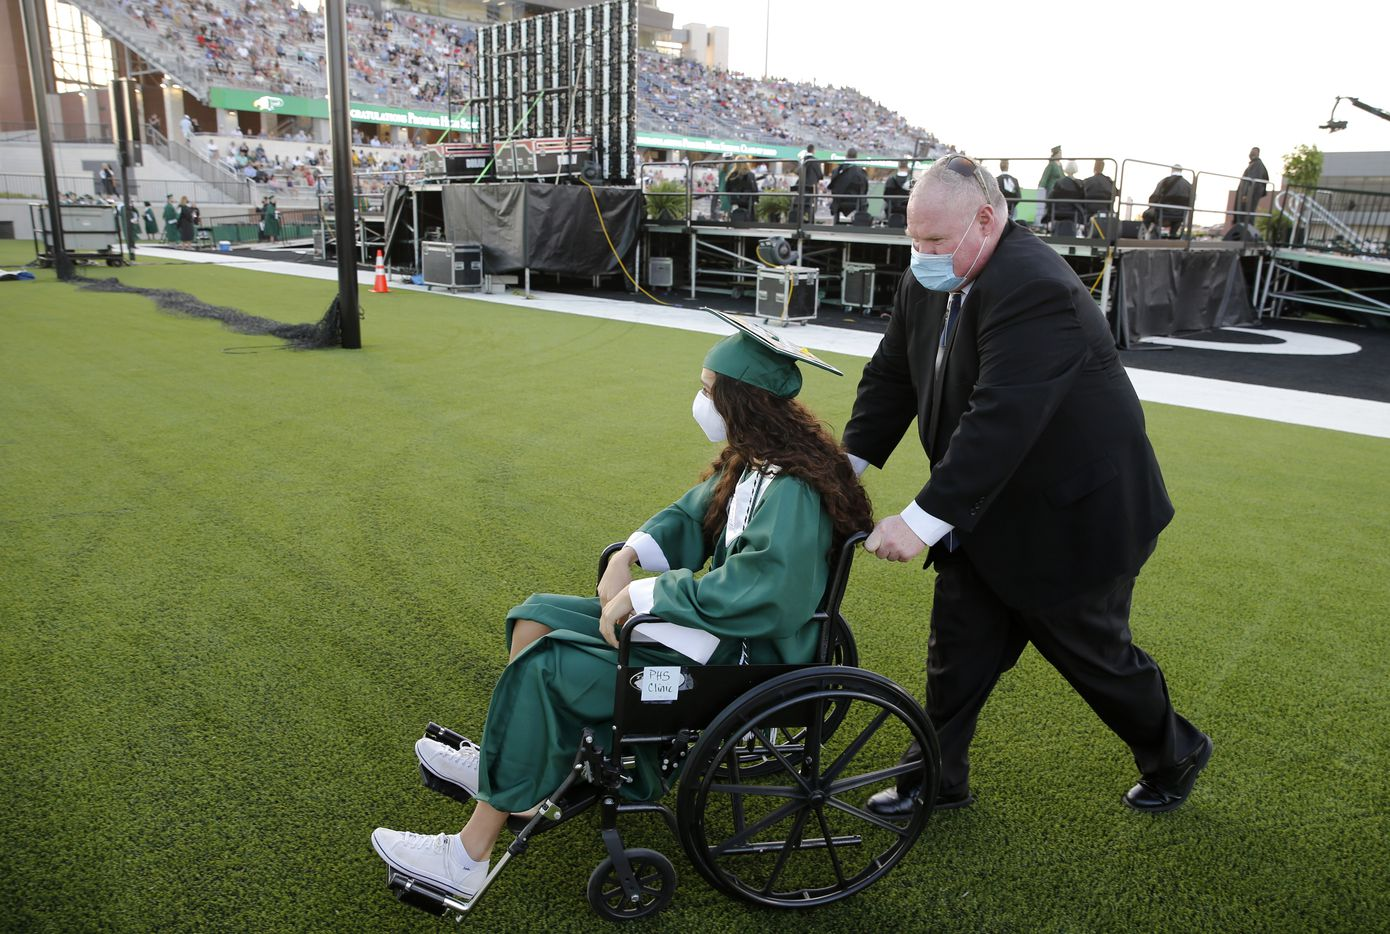 Prosper High School softball player Lexie Bell is pushed away from the stage by Prosper softball coach Todd Rainwater after she received her diploma during Prosper High School's graduation ceremony at Children's Health Stadium in Prosper, Texas on Friday, June 5, 2020. Bell signed to play softball at St. Edward's University. But she was recently diagnosed with Ewing Sarcoma, a rare form of cancer.